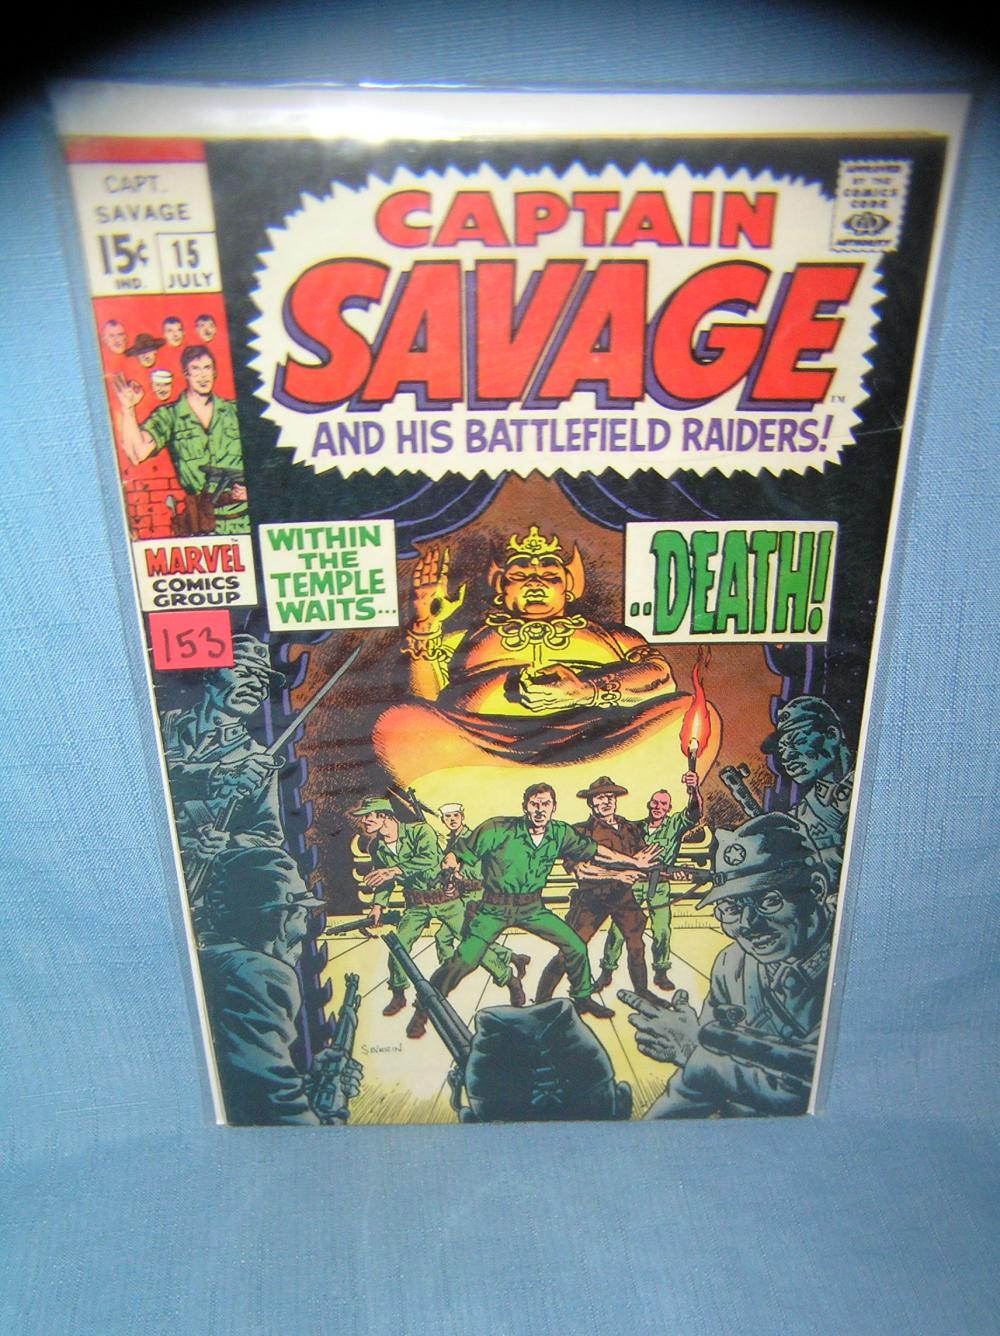 EARLY CAPT. SAVAGE COMIC BOOK